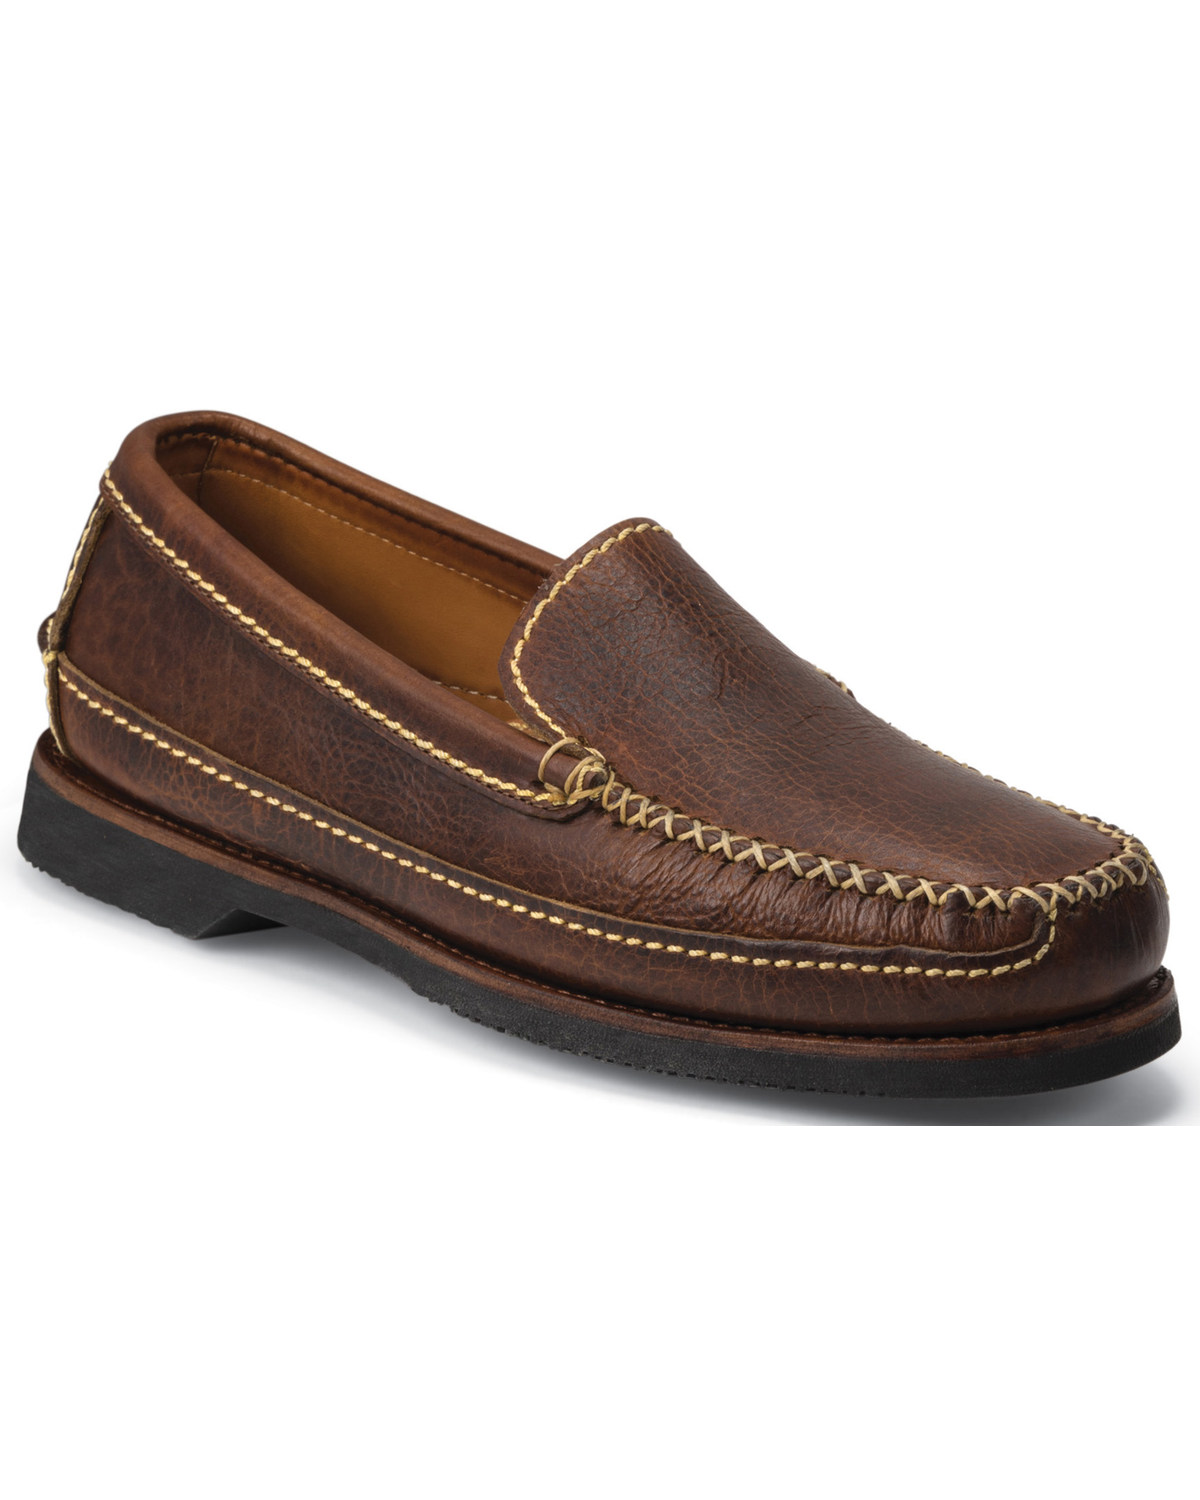 Rugged Casual Bison Loafers